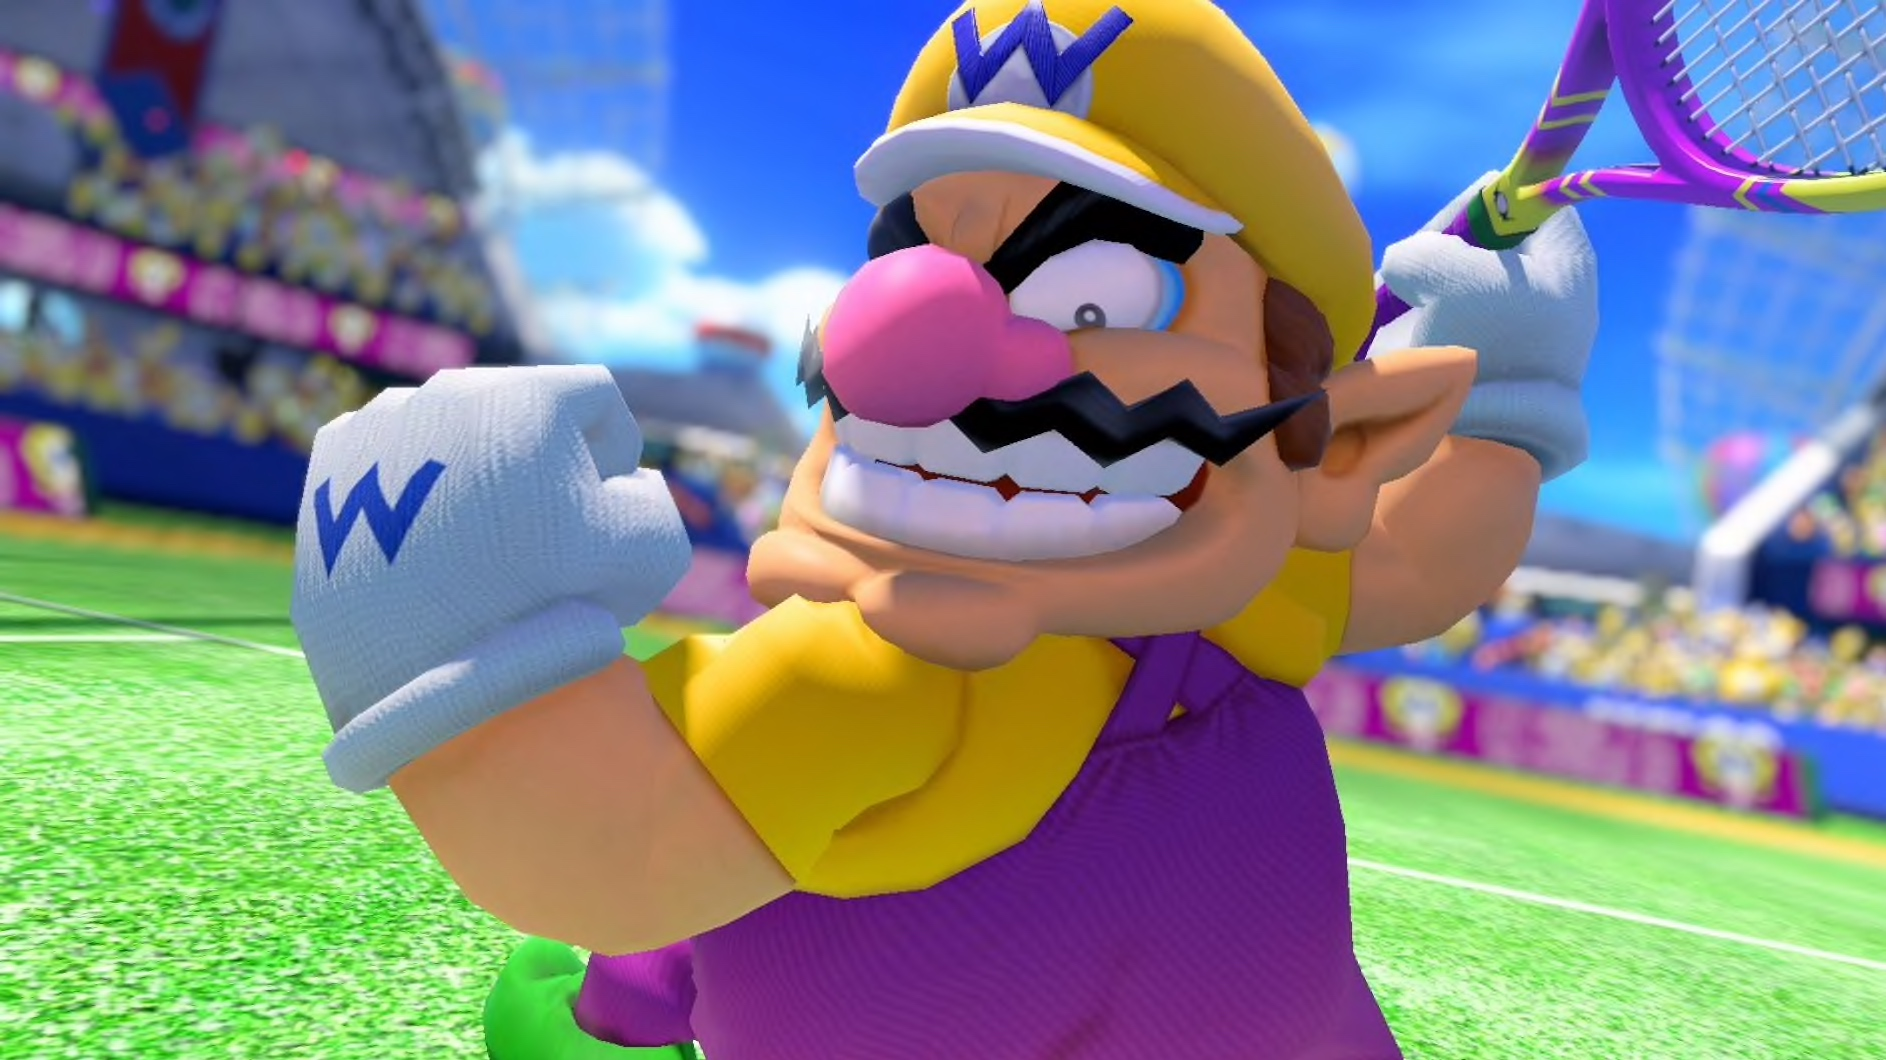 Wario Tennis Outfit